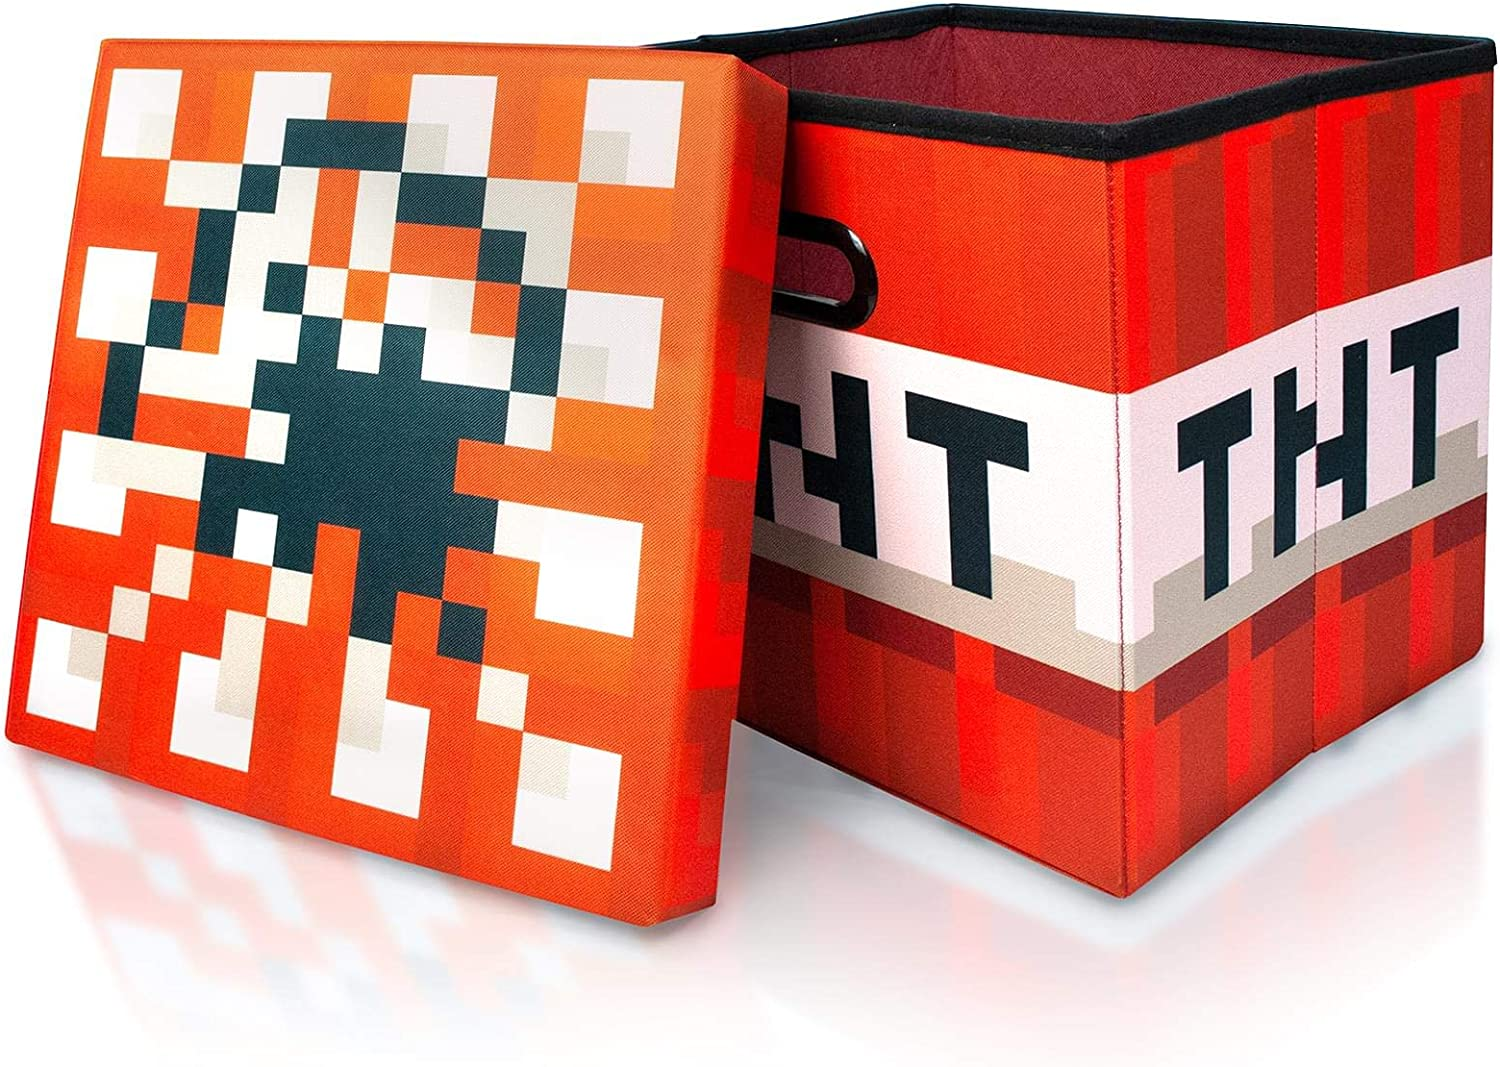 TNT Block from Cubbies Storage Cubes Organization Cubes 15-Inch Square Bin with Lid Minecraft TNT Block Storage Cube Organizer Storage Cube